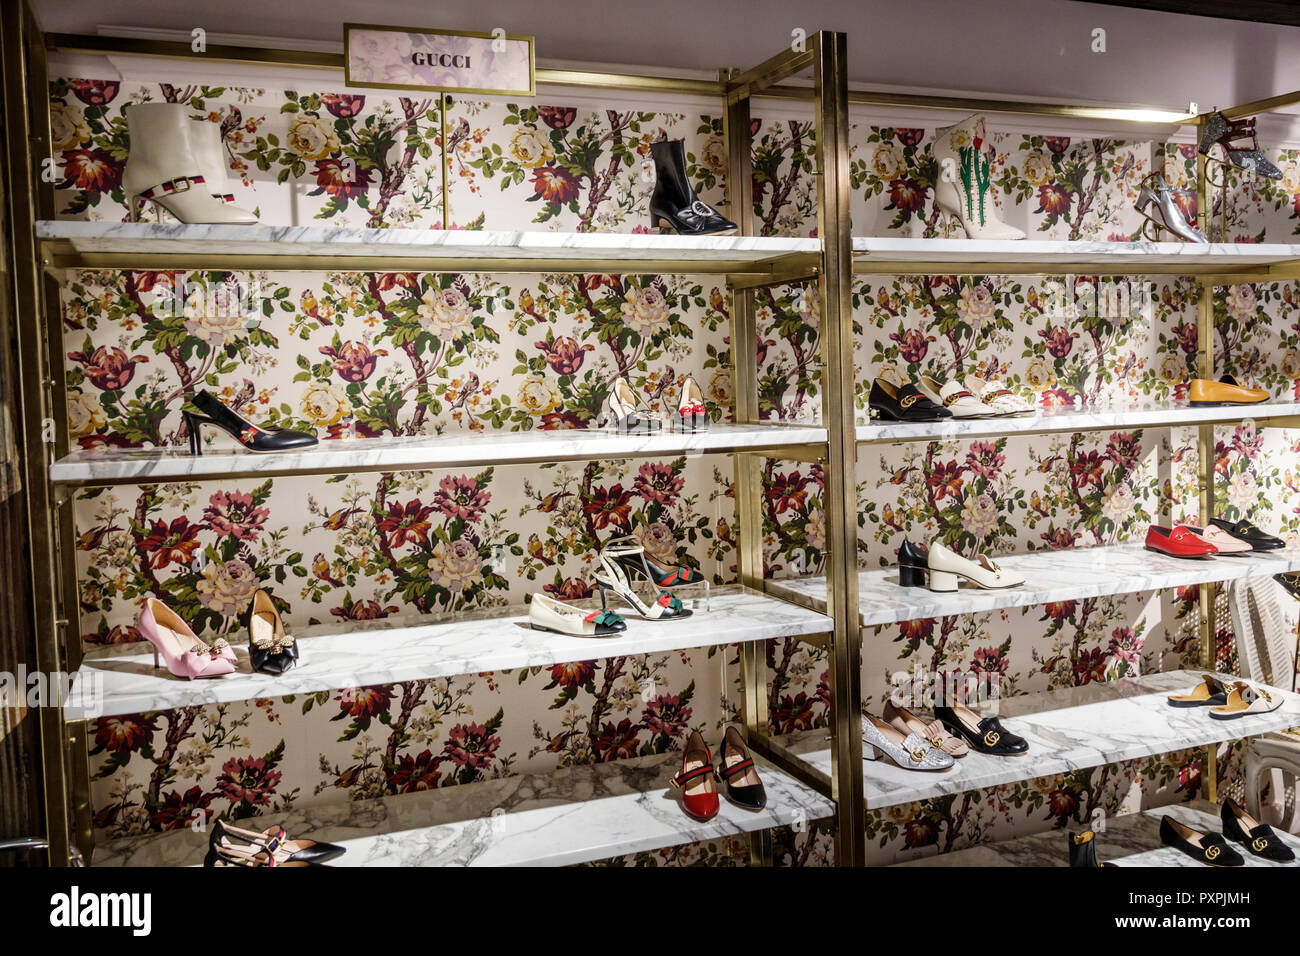 53a80ead7d5f London England United Kingdom Great Britain Soho Liberty Department Store  shopping luxury brands upmarket women s shoes designer Gucci display sale